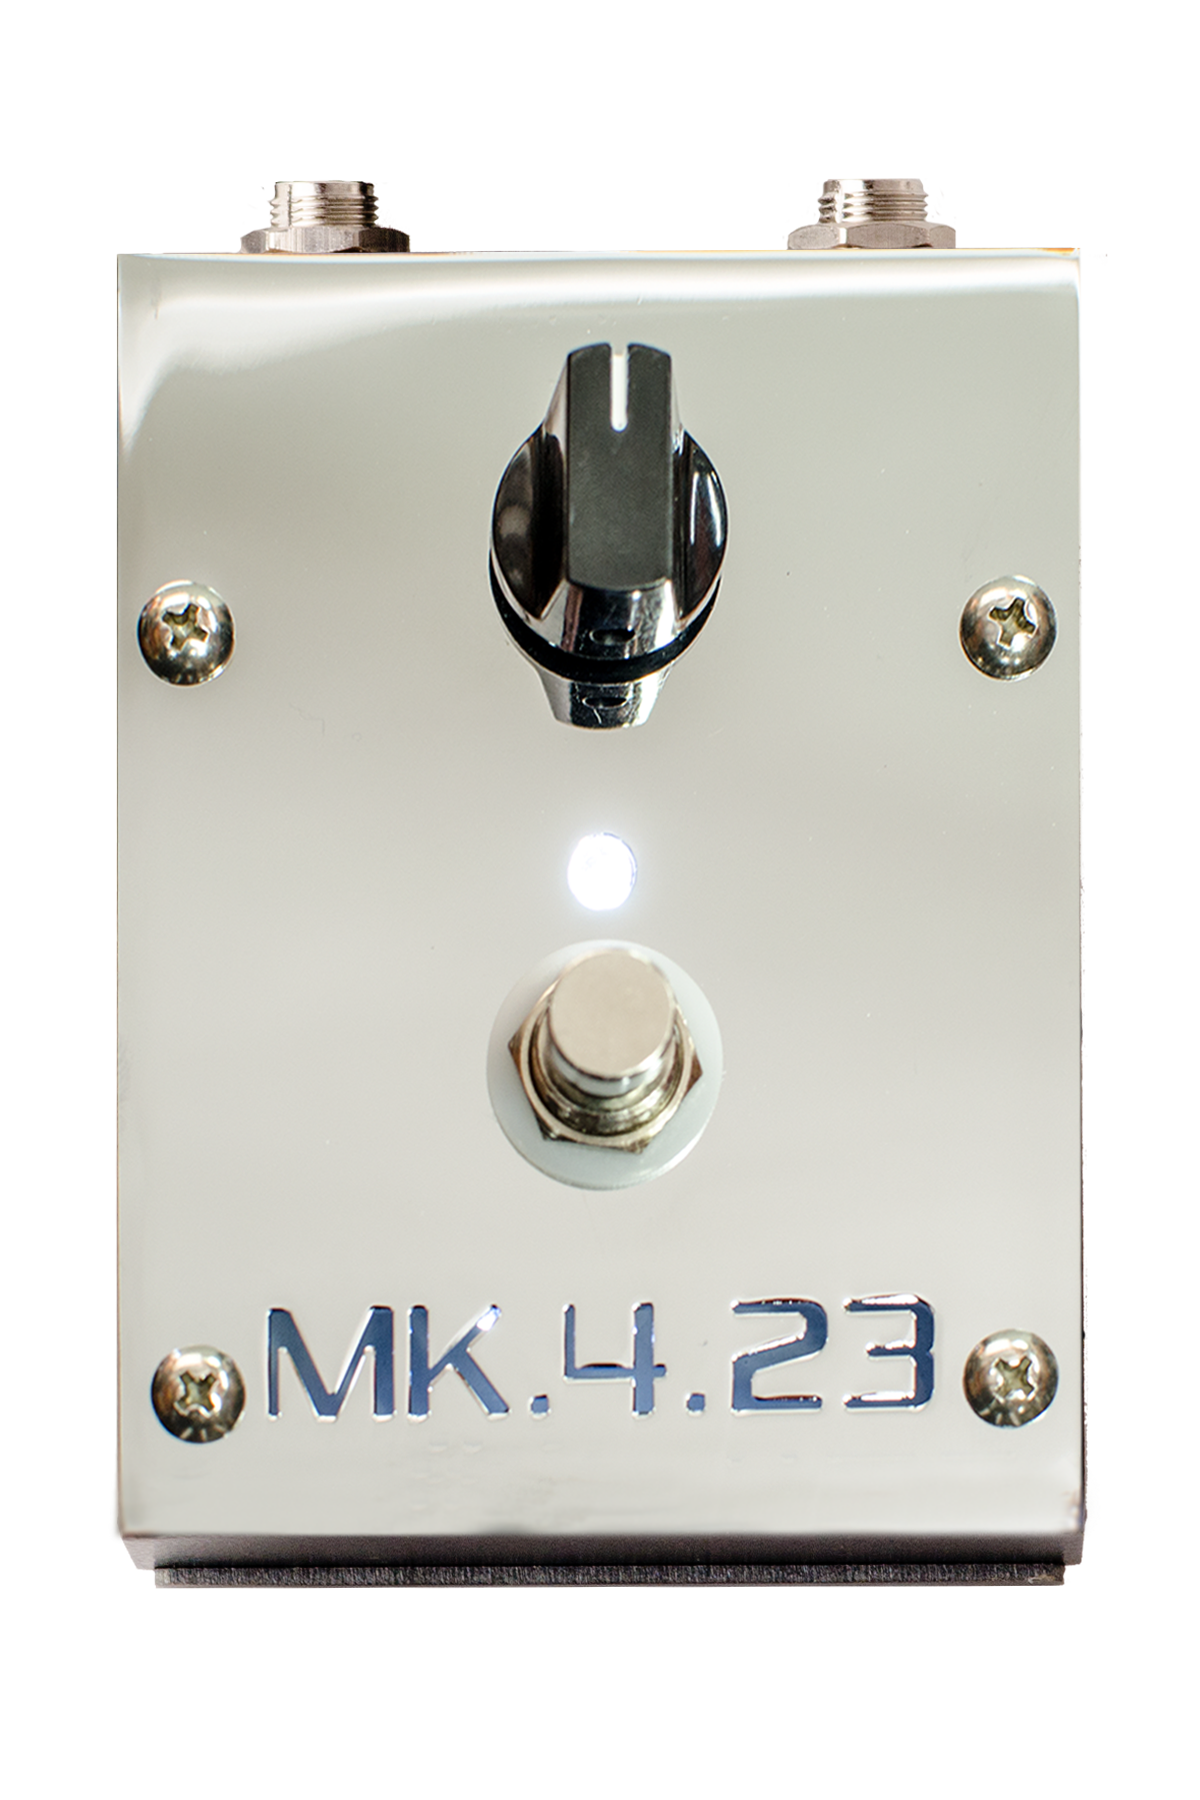 MK.4.23 Chrome - boost pedal front